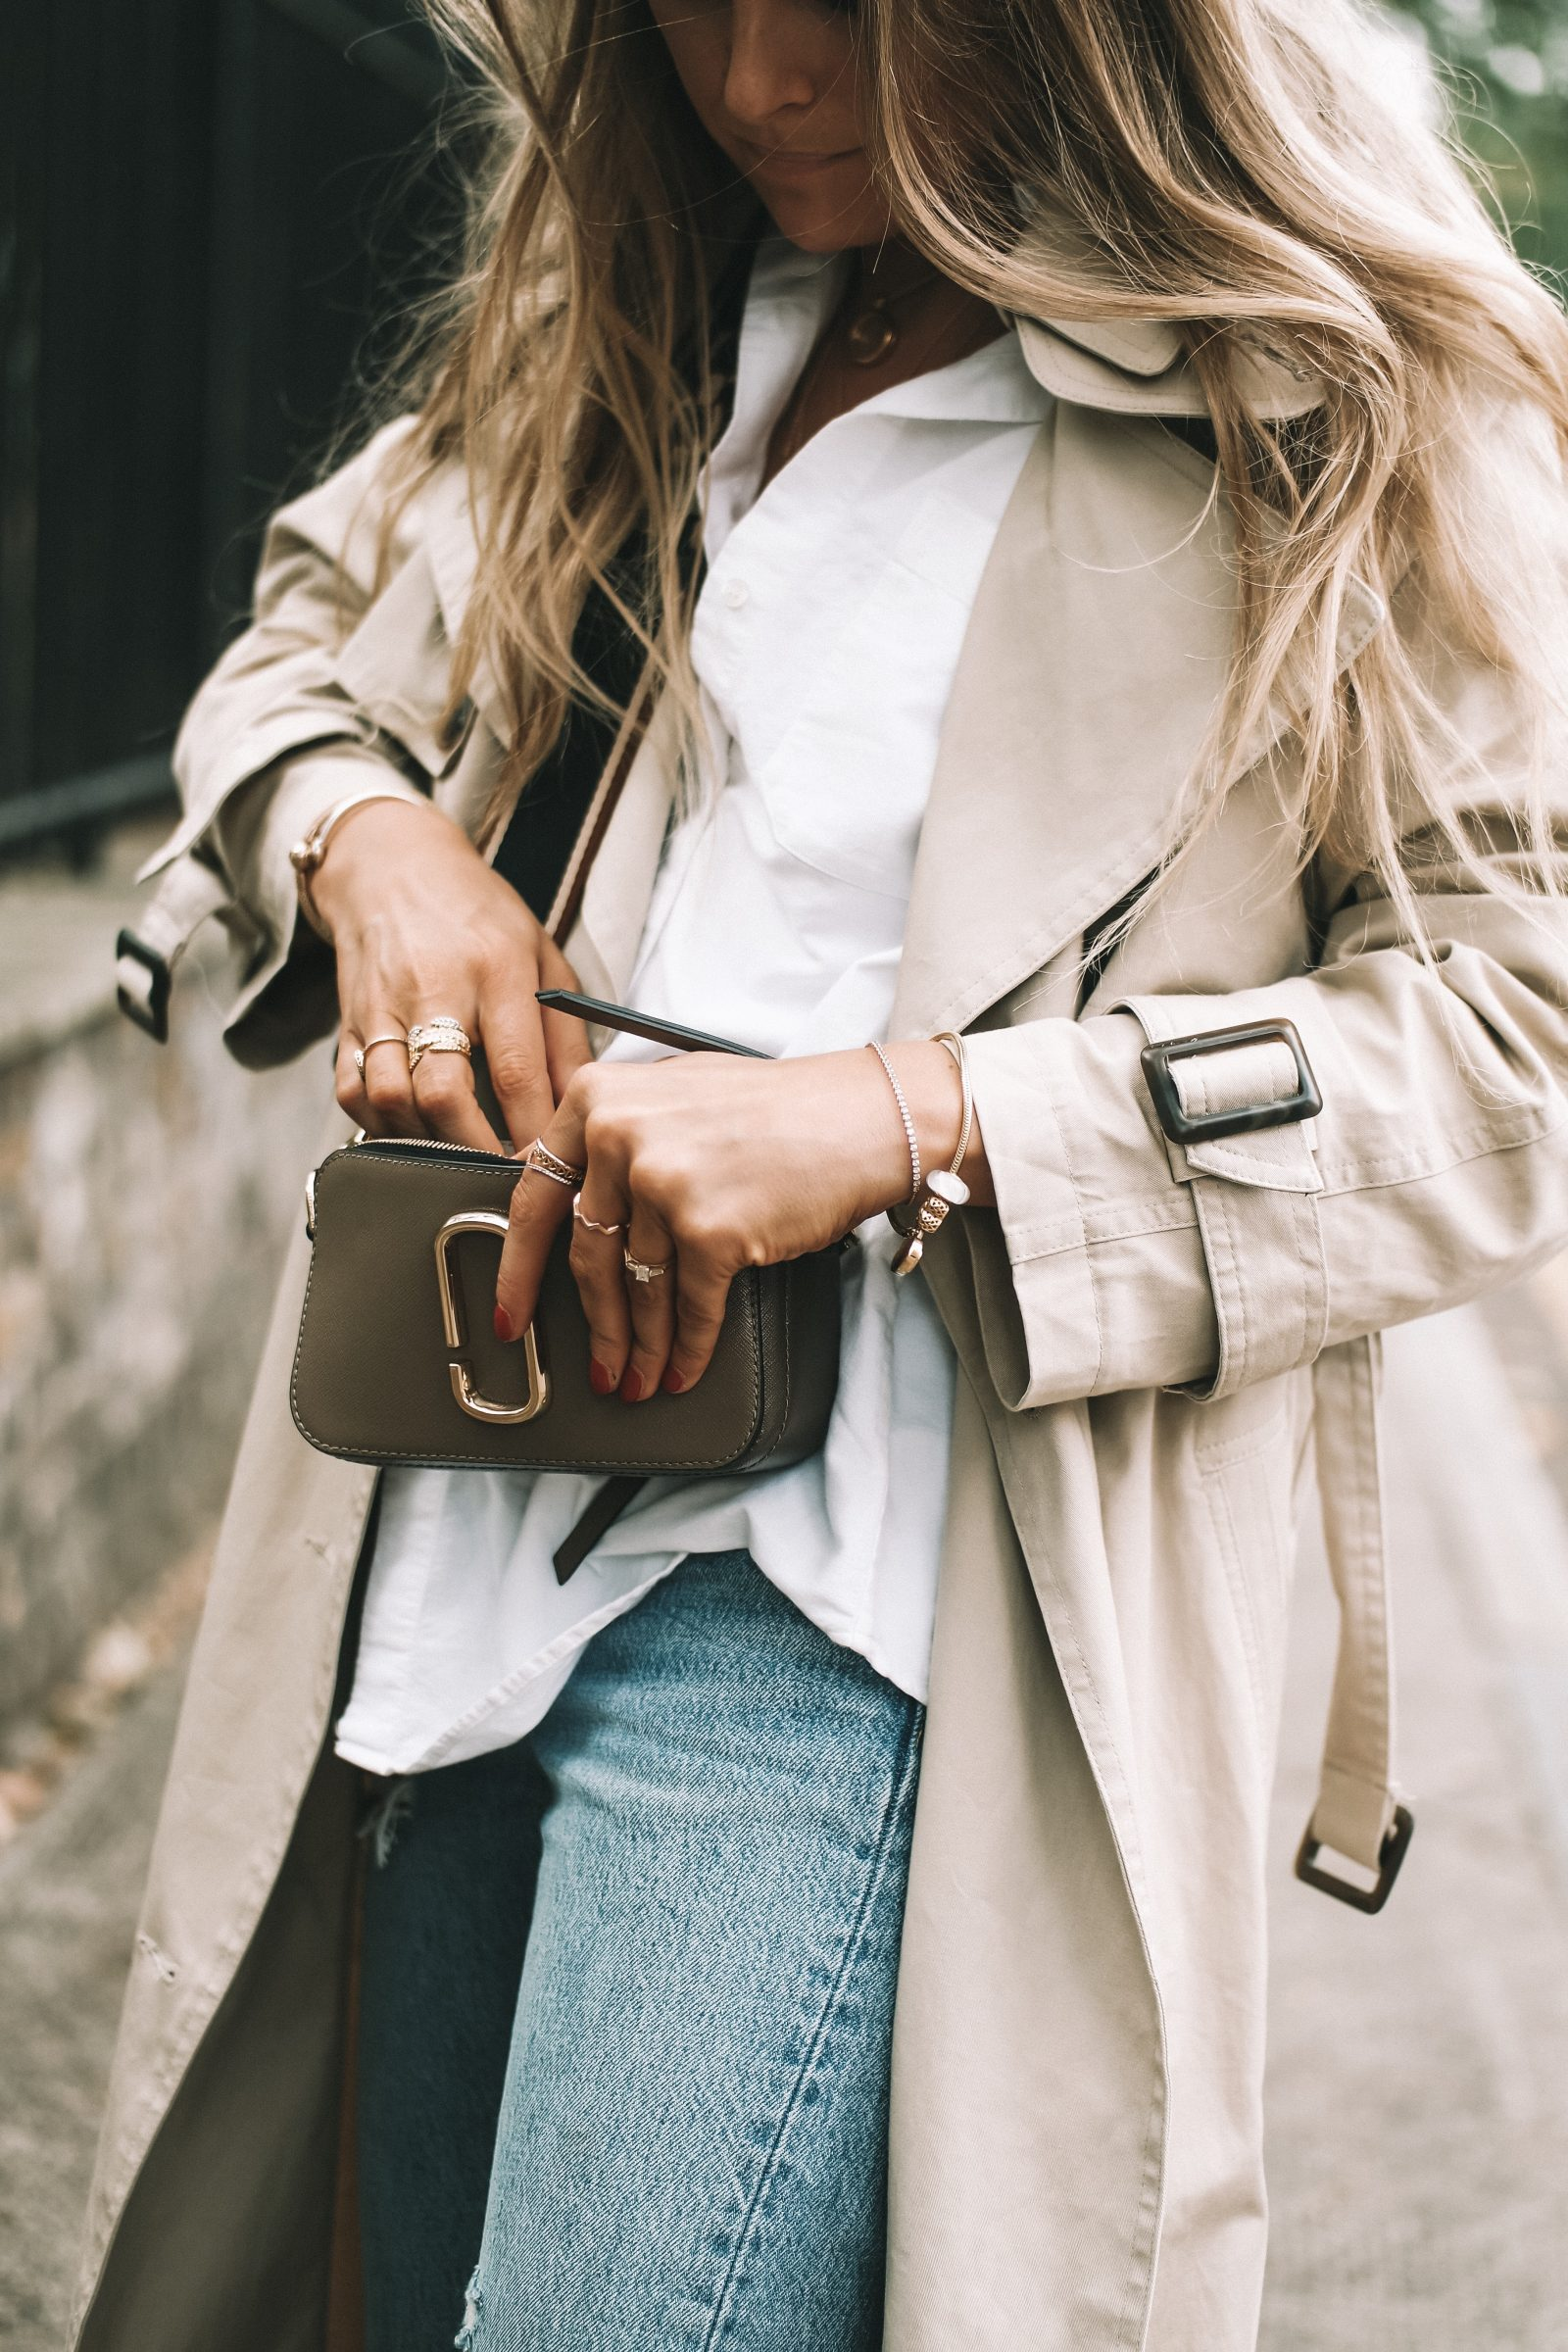 LFW Street Style - Classic Trench Coat